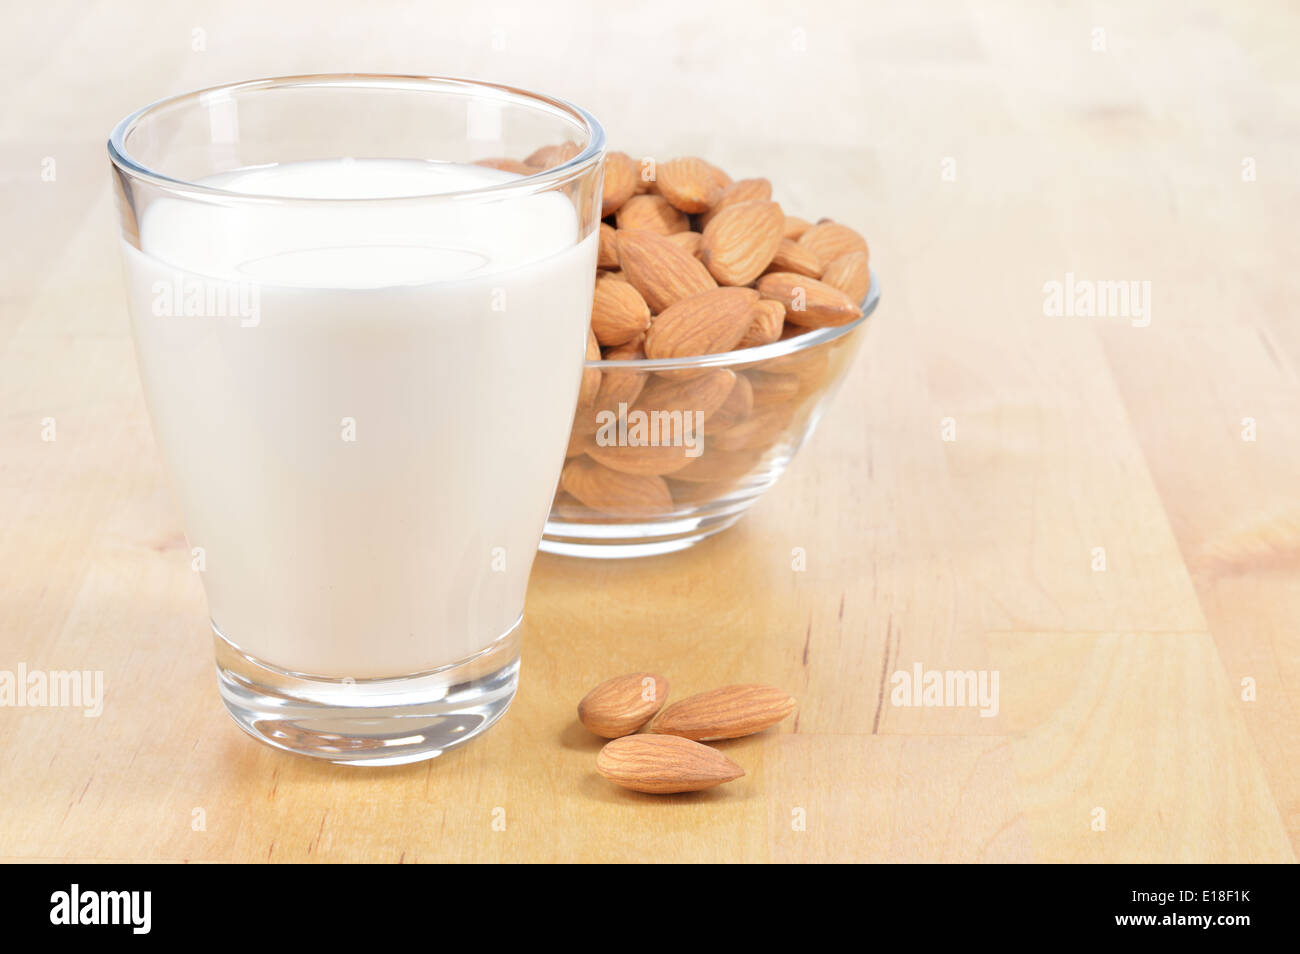 Almond milk as a substitute for dairy milk. Glass of almond milk and bowl of almonds on a wooden table. - Stock Image